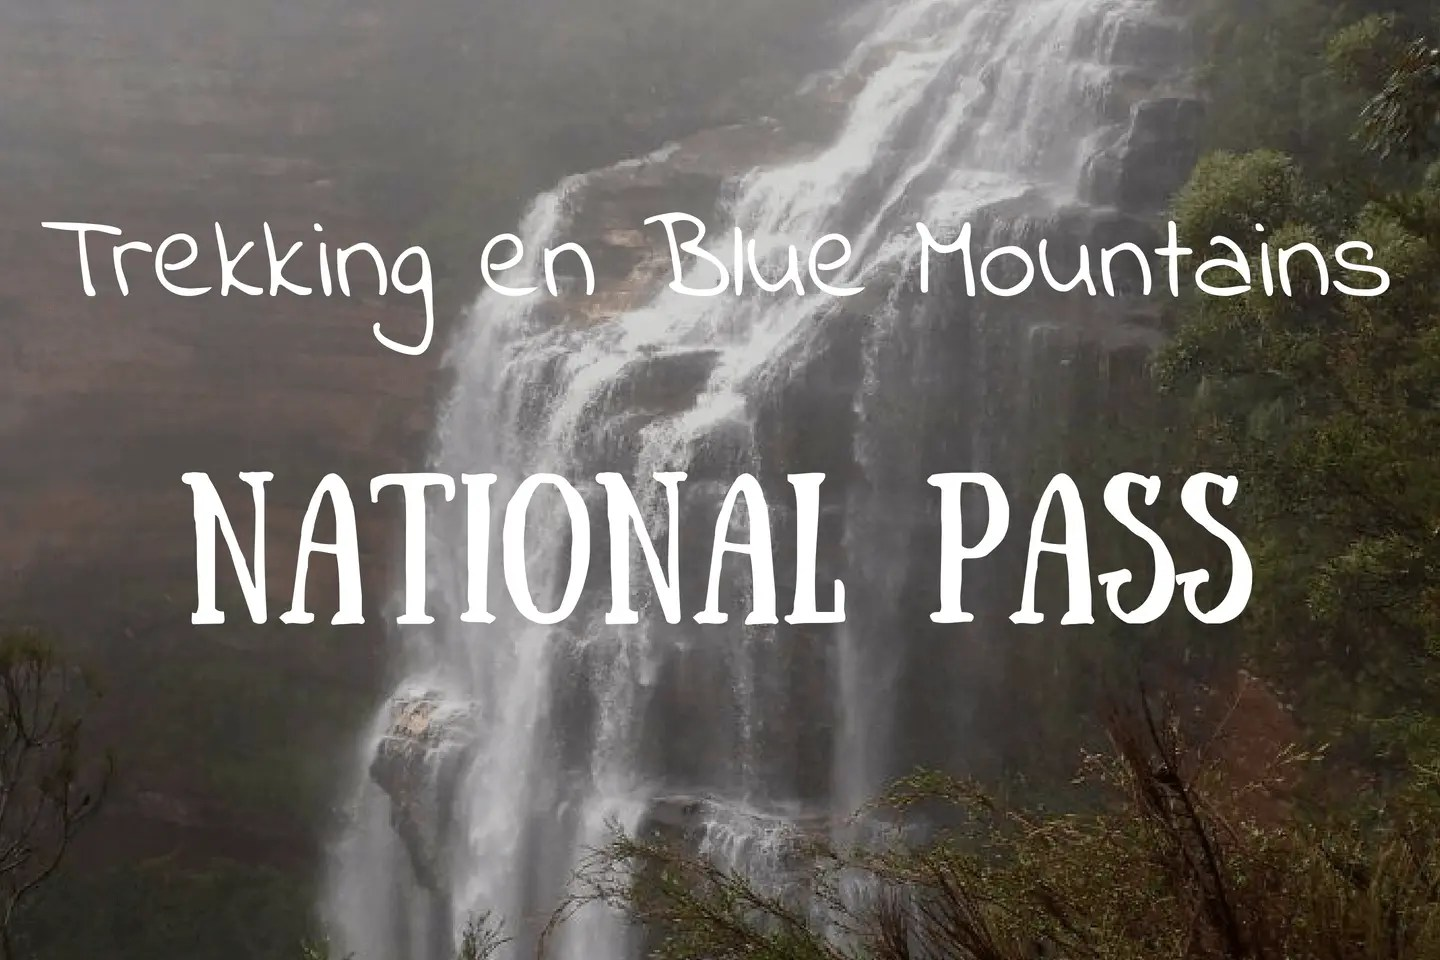 Trekking Blue Mountains National Pass